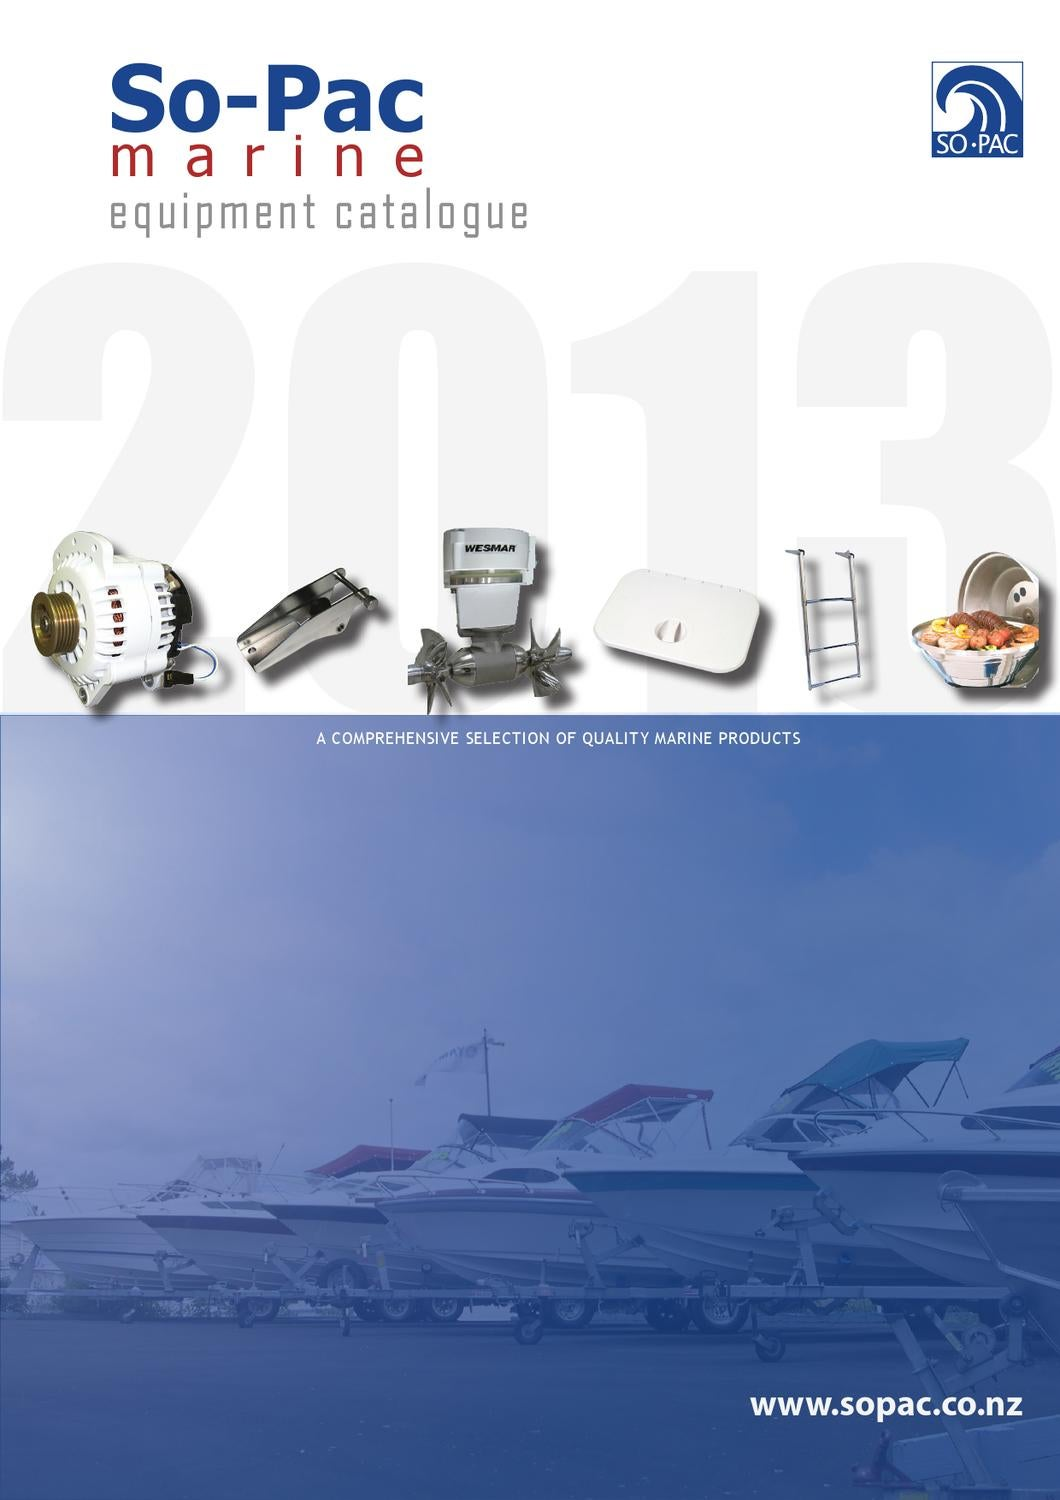 So Pac Marine Equipment Catalogue 2013 By Issuu 110502 The Problems And Potential Of Portable Power